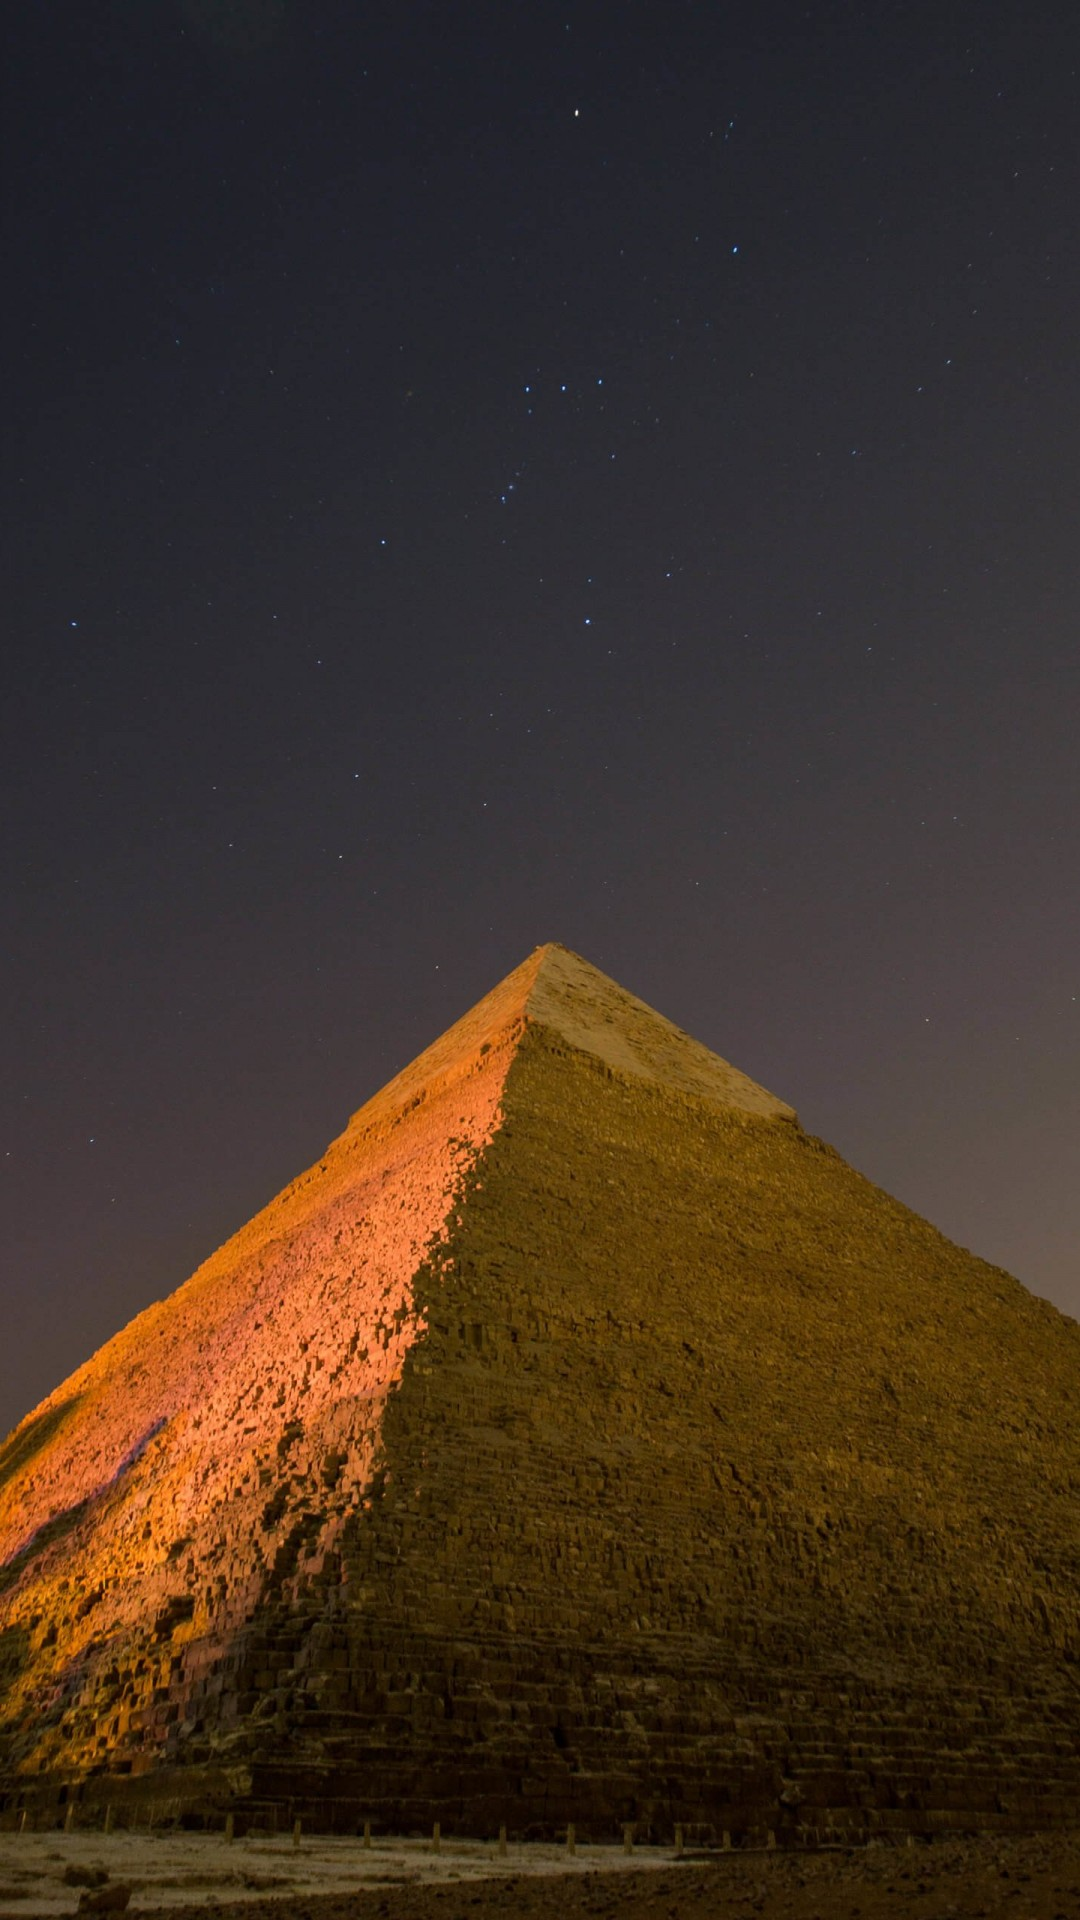 Pyramid by Night Wallpaper for Google Nexus 5